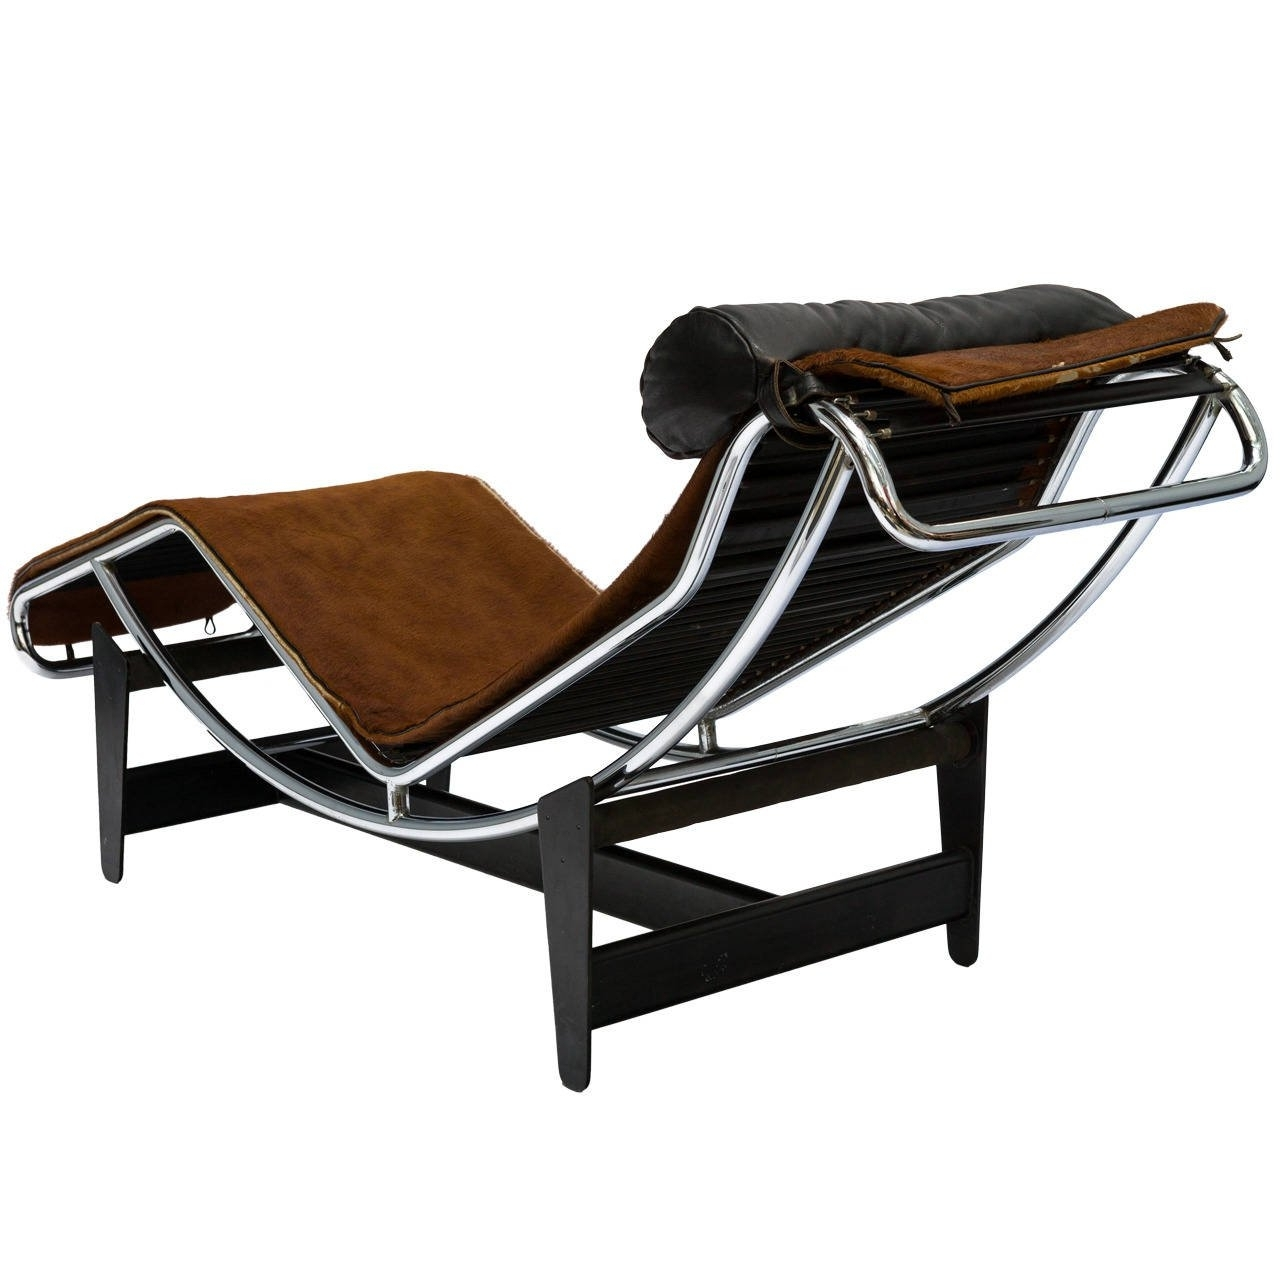 Corbusier Chaises Pertaining To Preferred Le Corbusier Lc4 Chaise Lounge Chair In Cowhide For Sale At 1Stdibs (View 6 of 15)